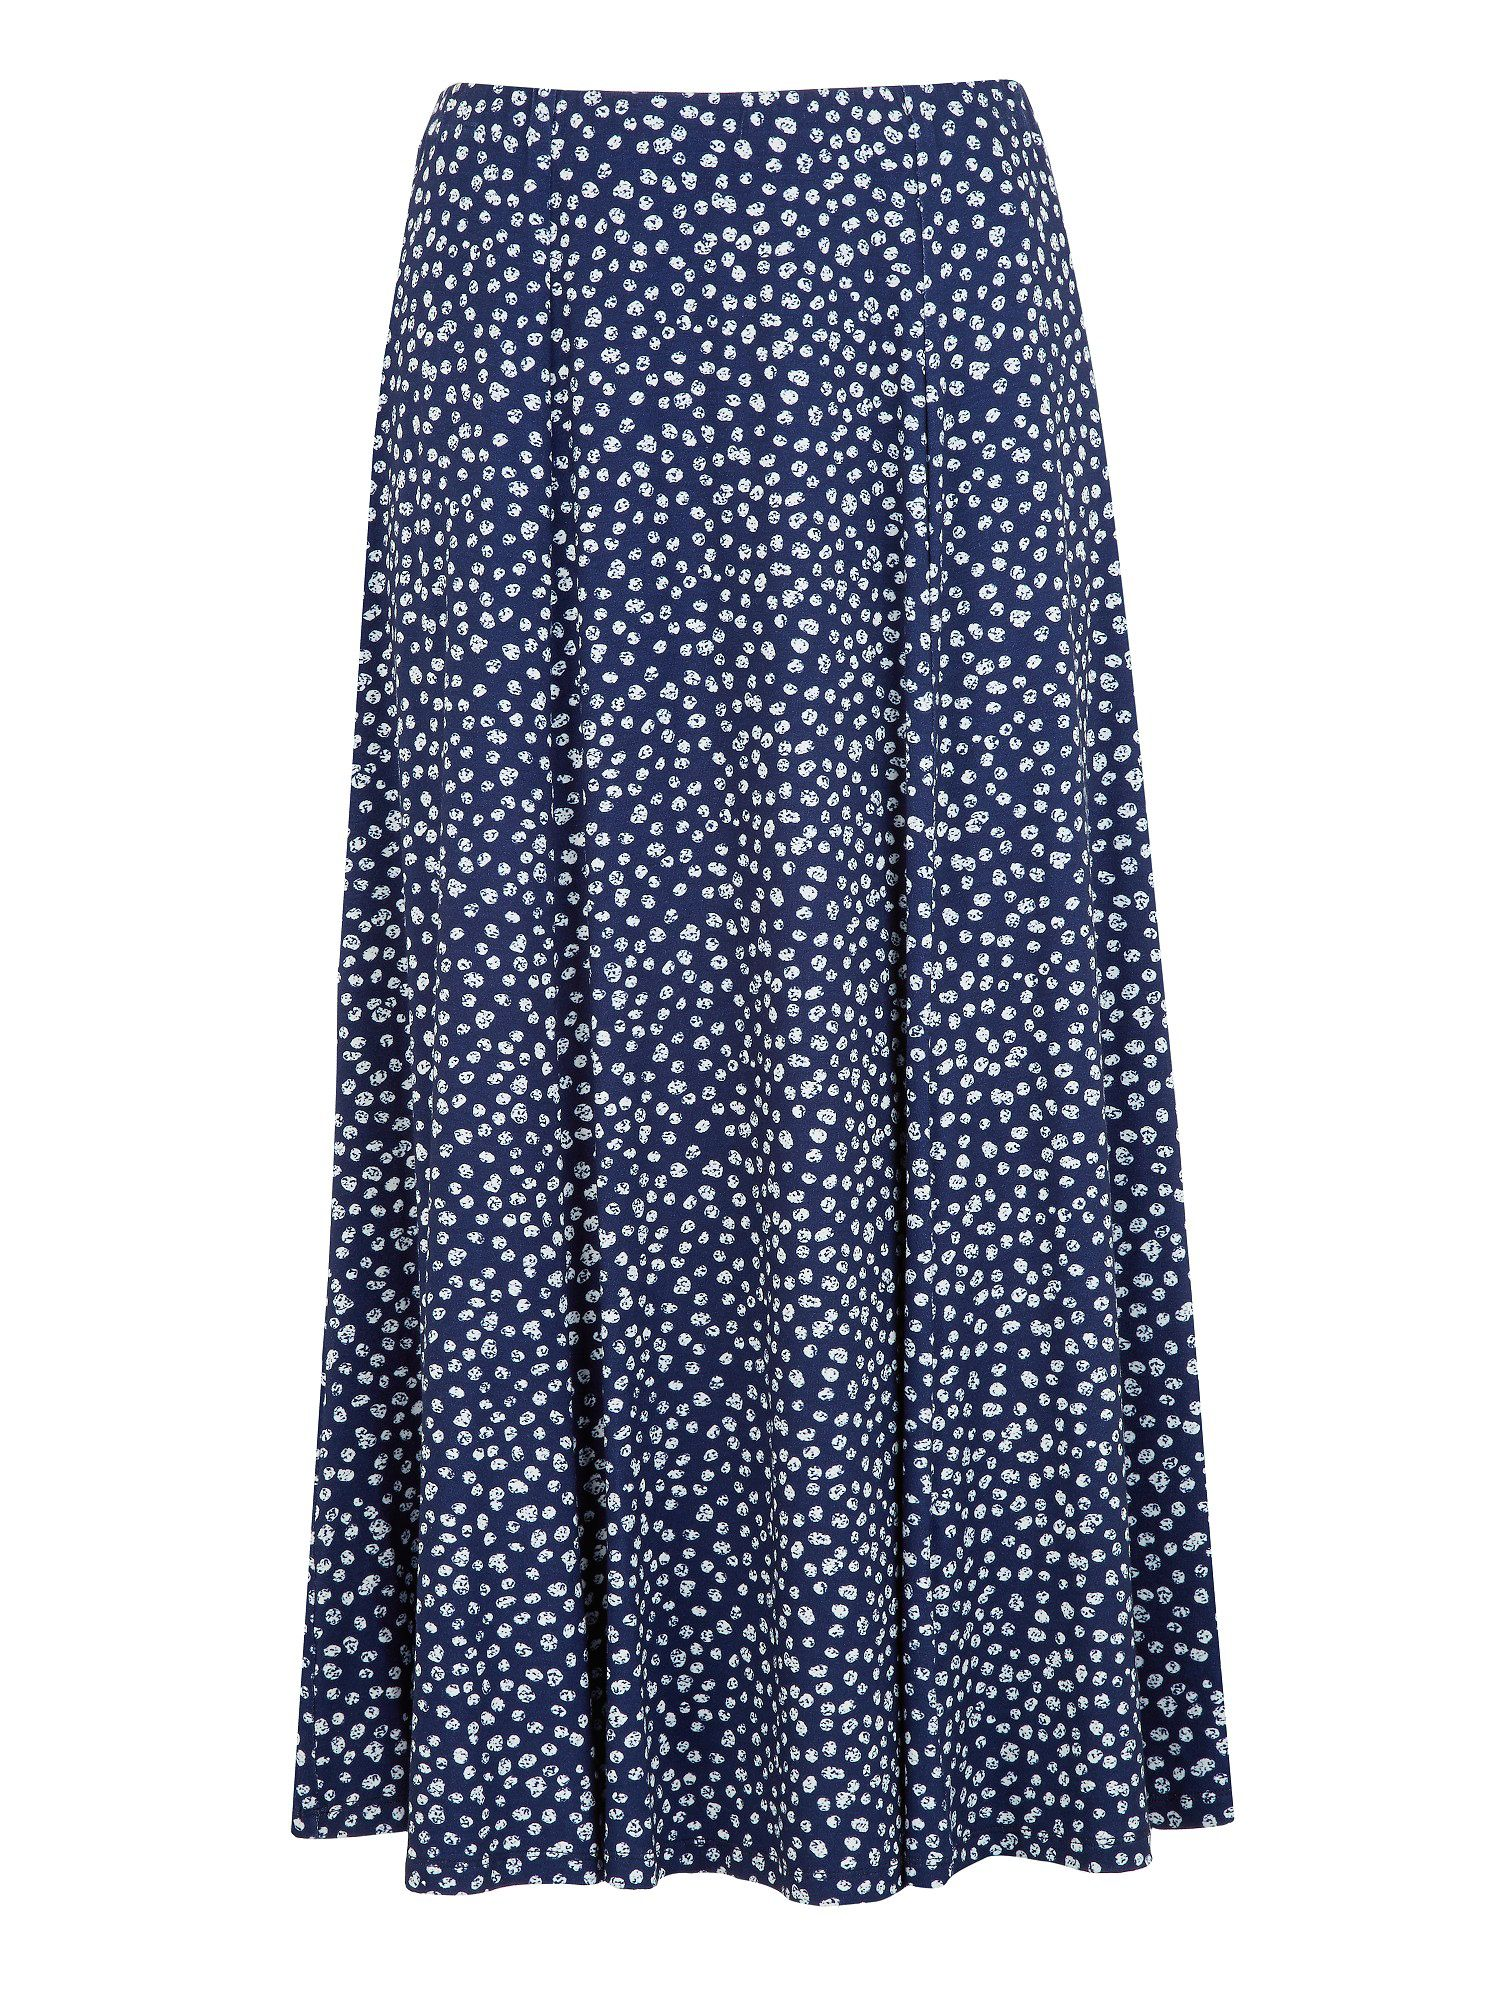 Polka dot shorter length jersey skirt